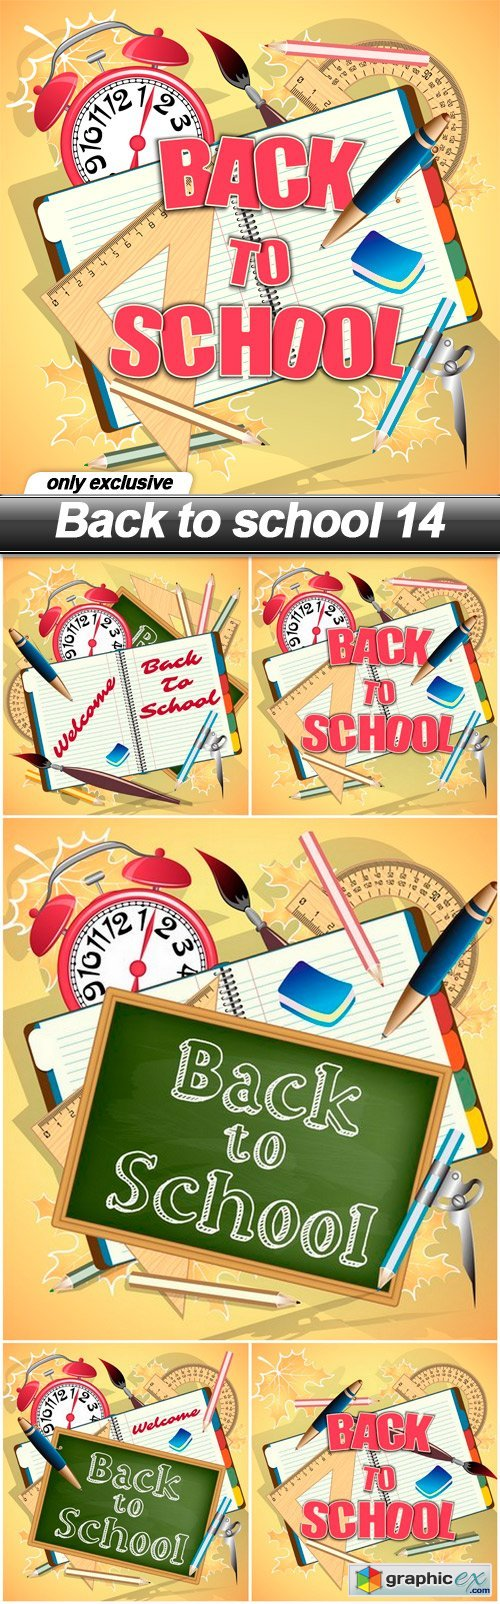 Back to school 14 - 5 EPS